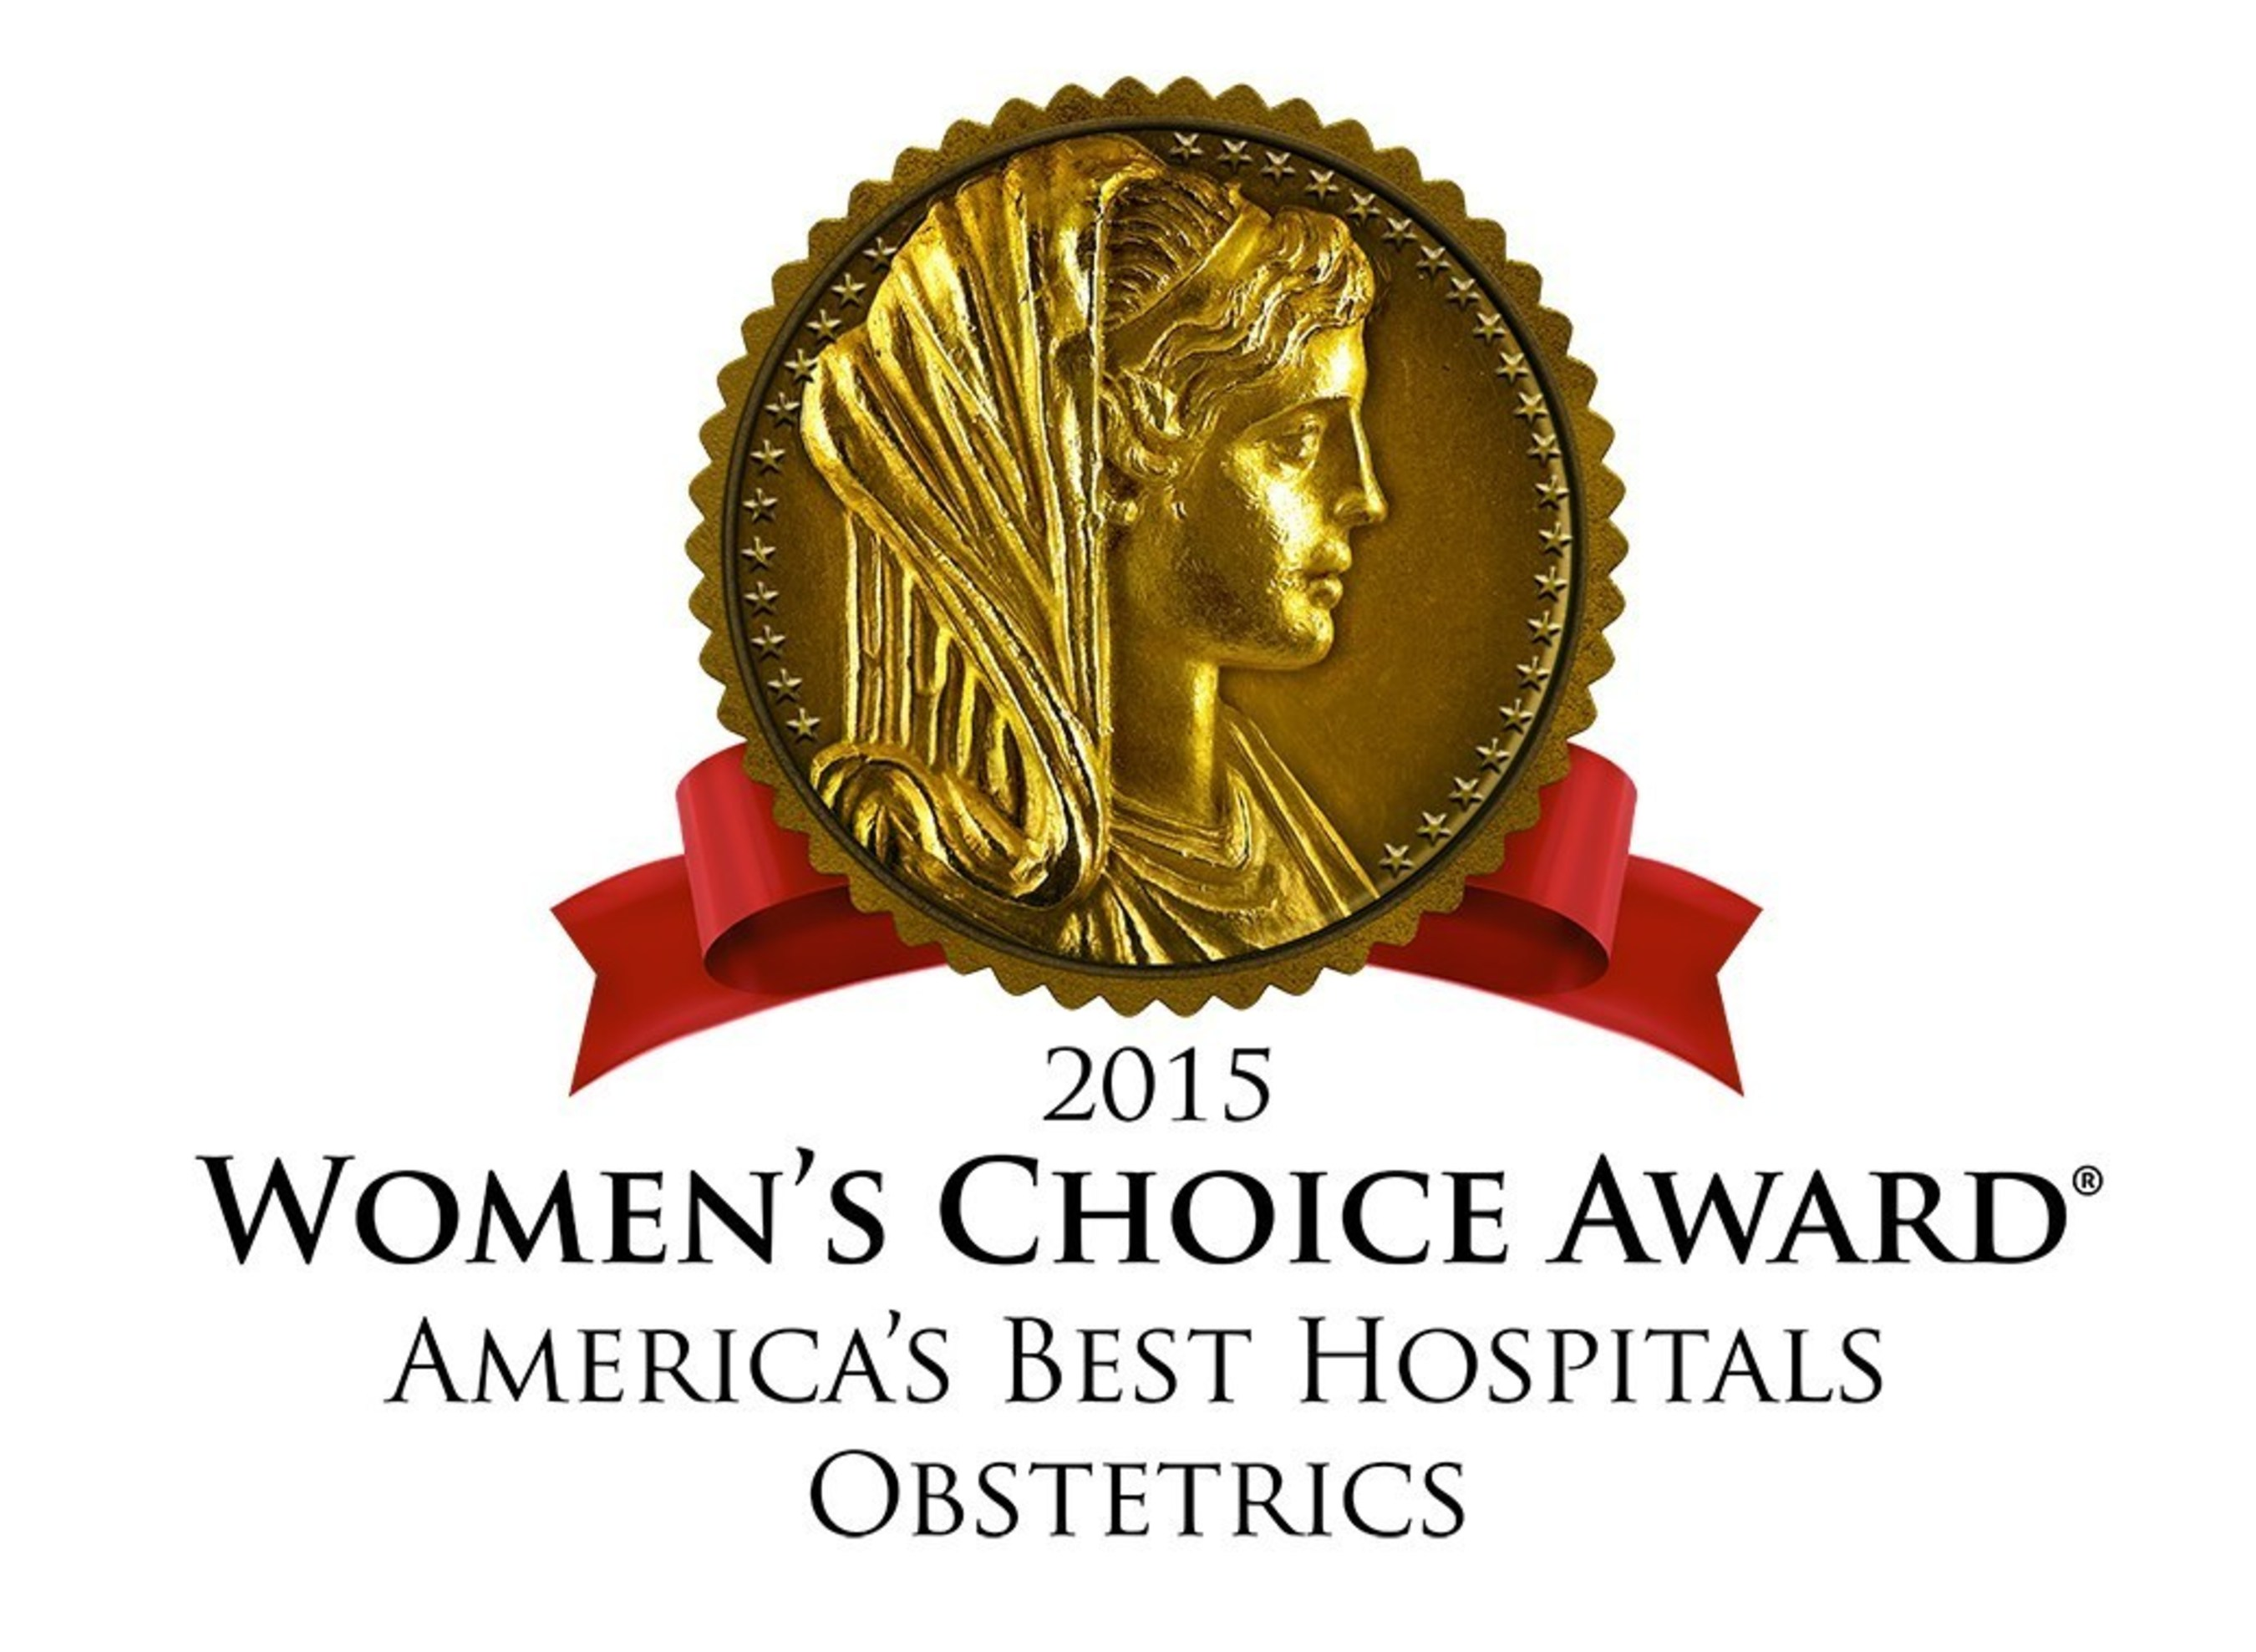 The Women's Choice Award sets the standard for helping women to make smarter choices through education, empowerment and validation. Awards are determined by evidenced-based research and identify the brands, products and services most recommended and trusted by women. Visit www.WomensChoiceAward.com.